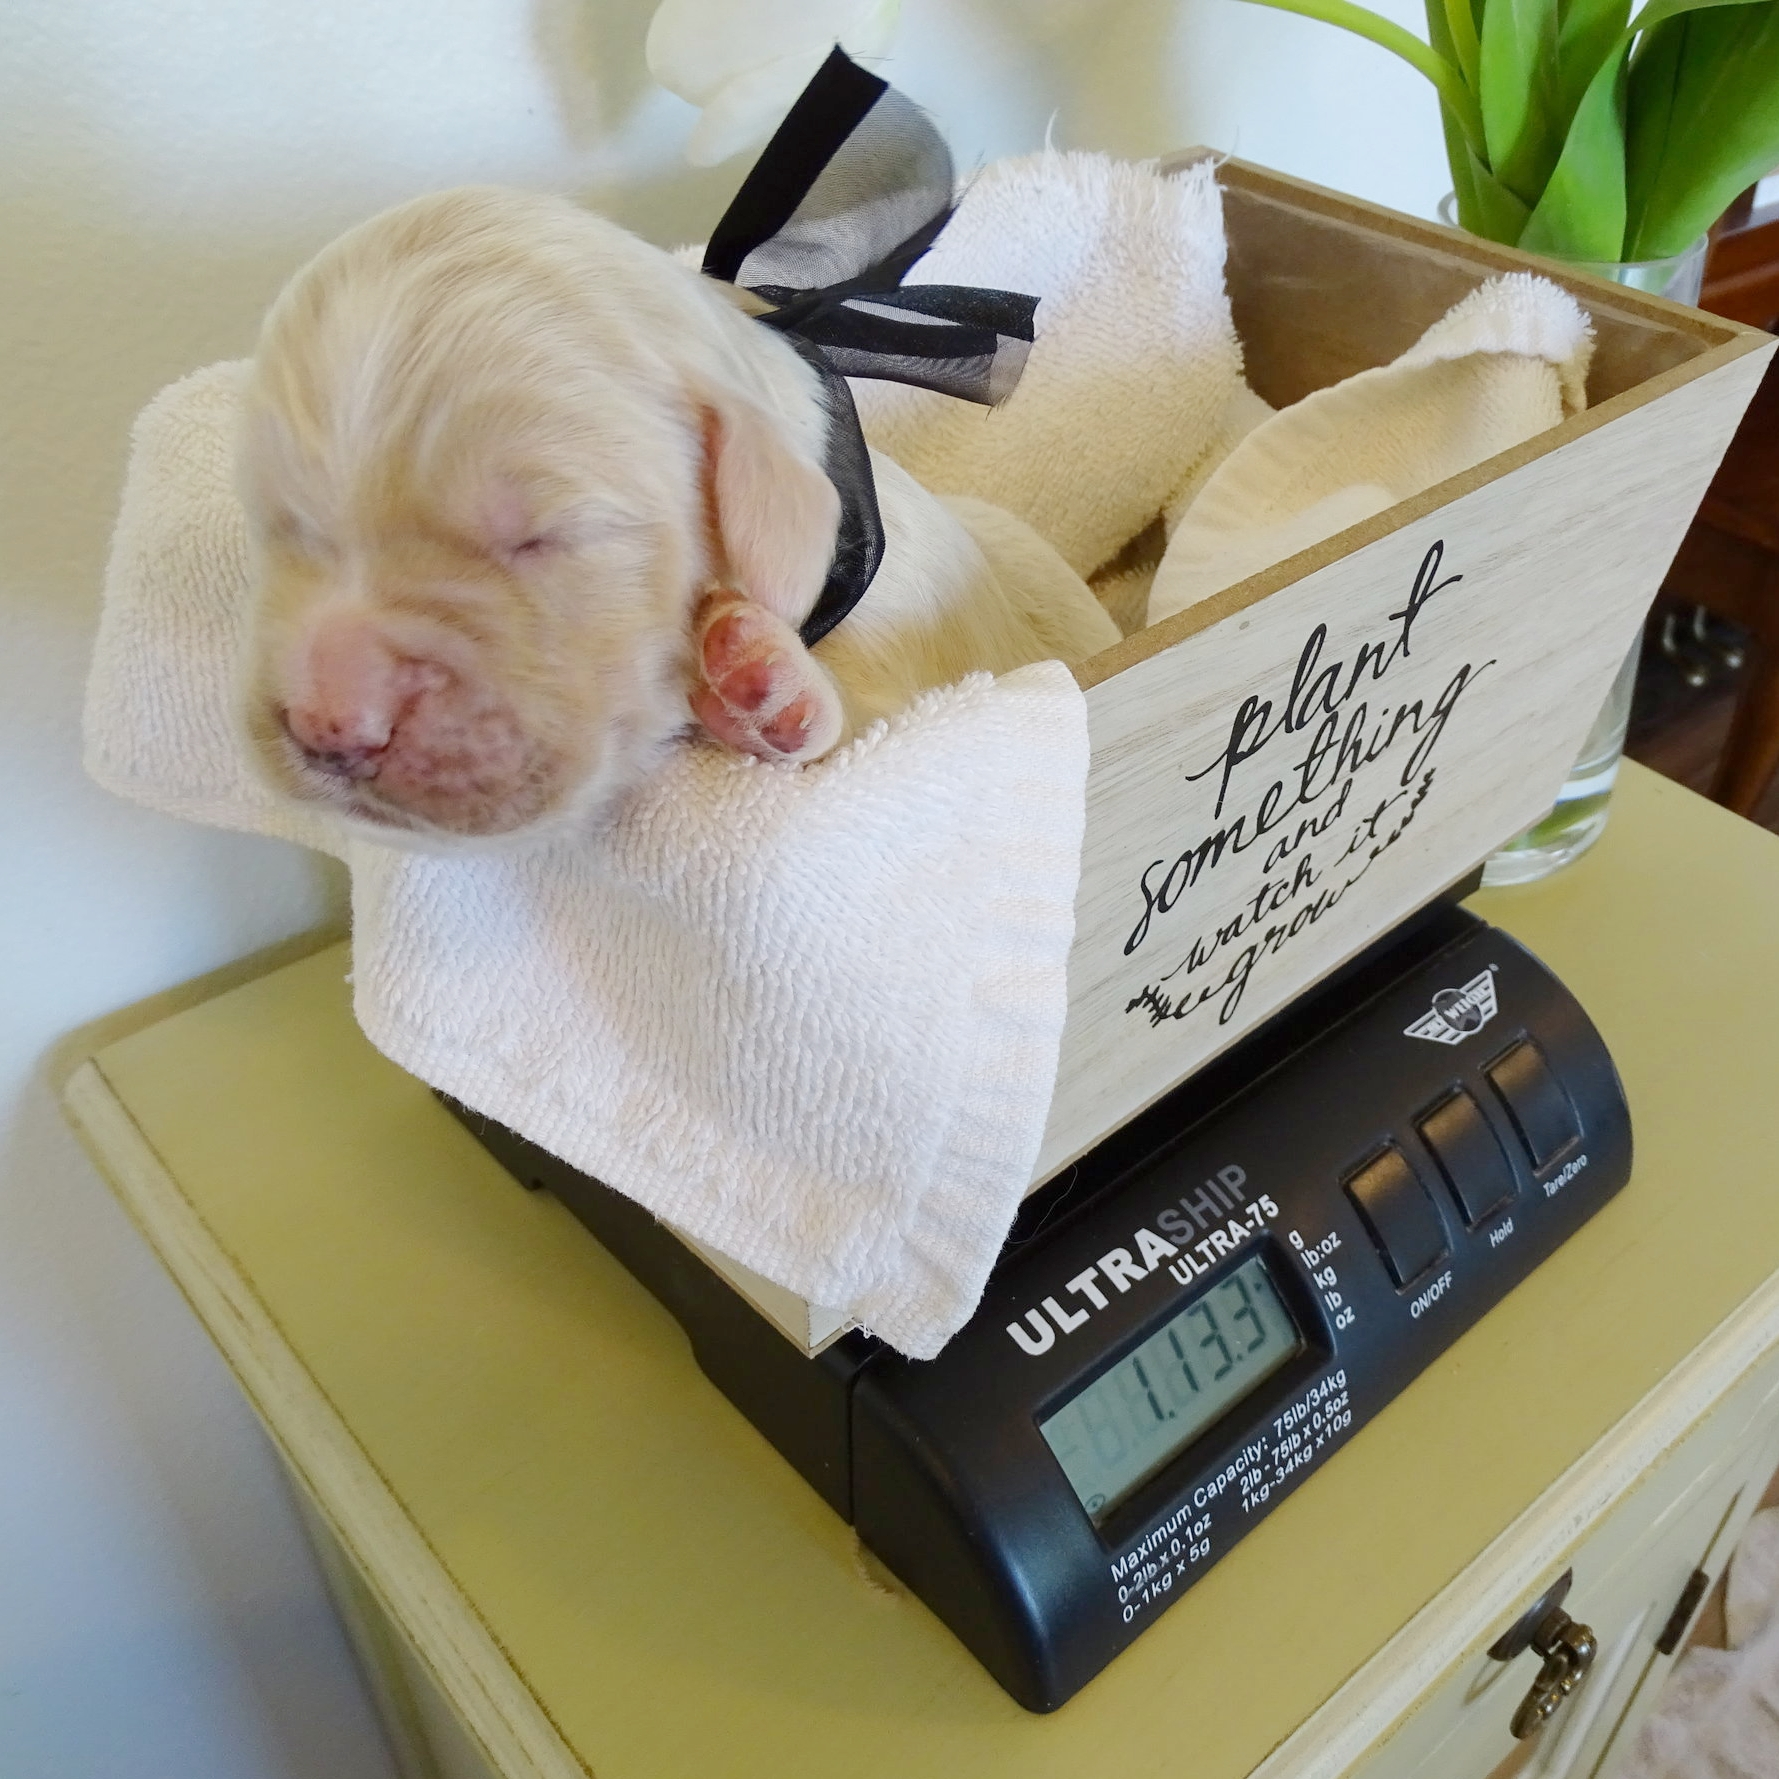 Willoughby is a cream colored male born at 12:56 pm on 10/3/17 weighing 14.8 oz. He currently weighs 1 lb 13 oz.